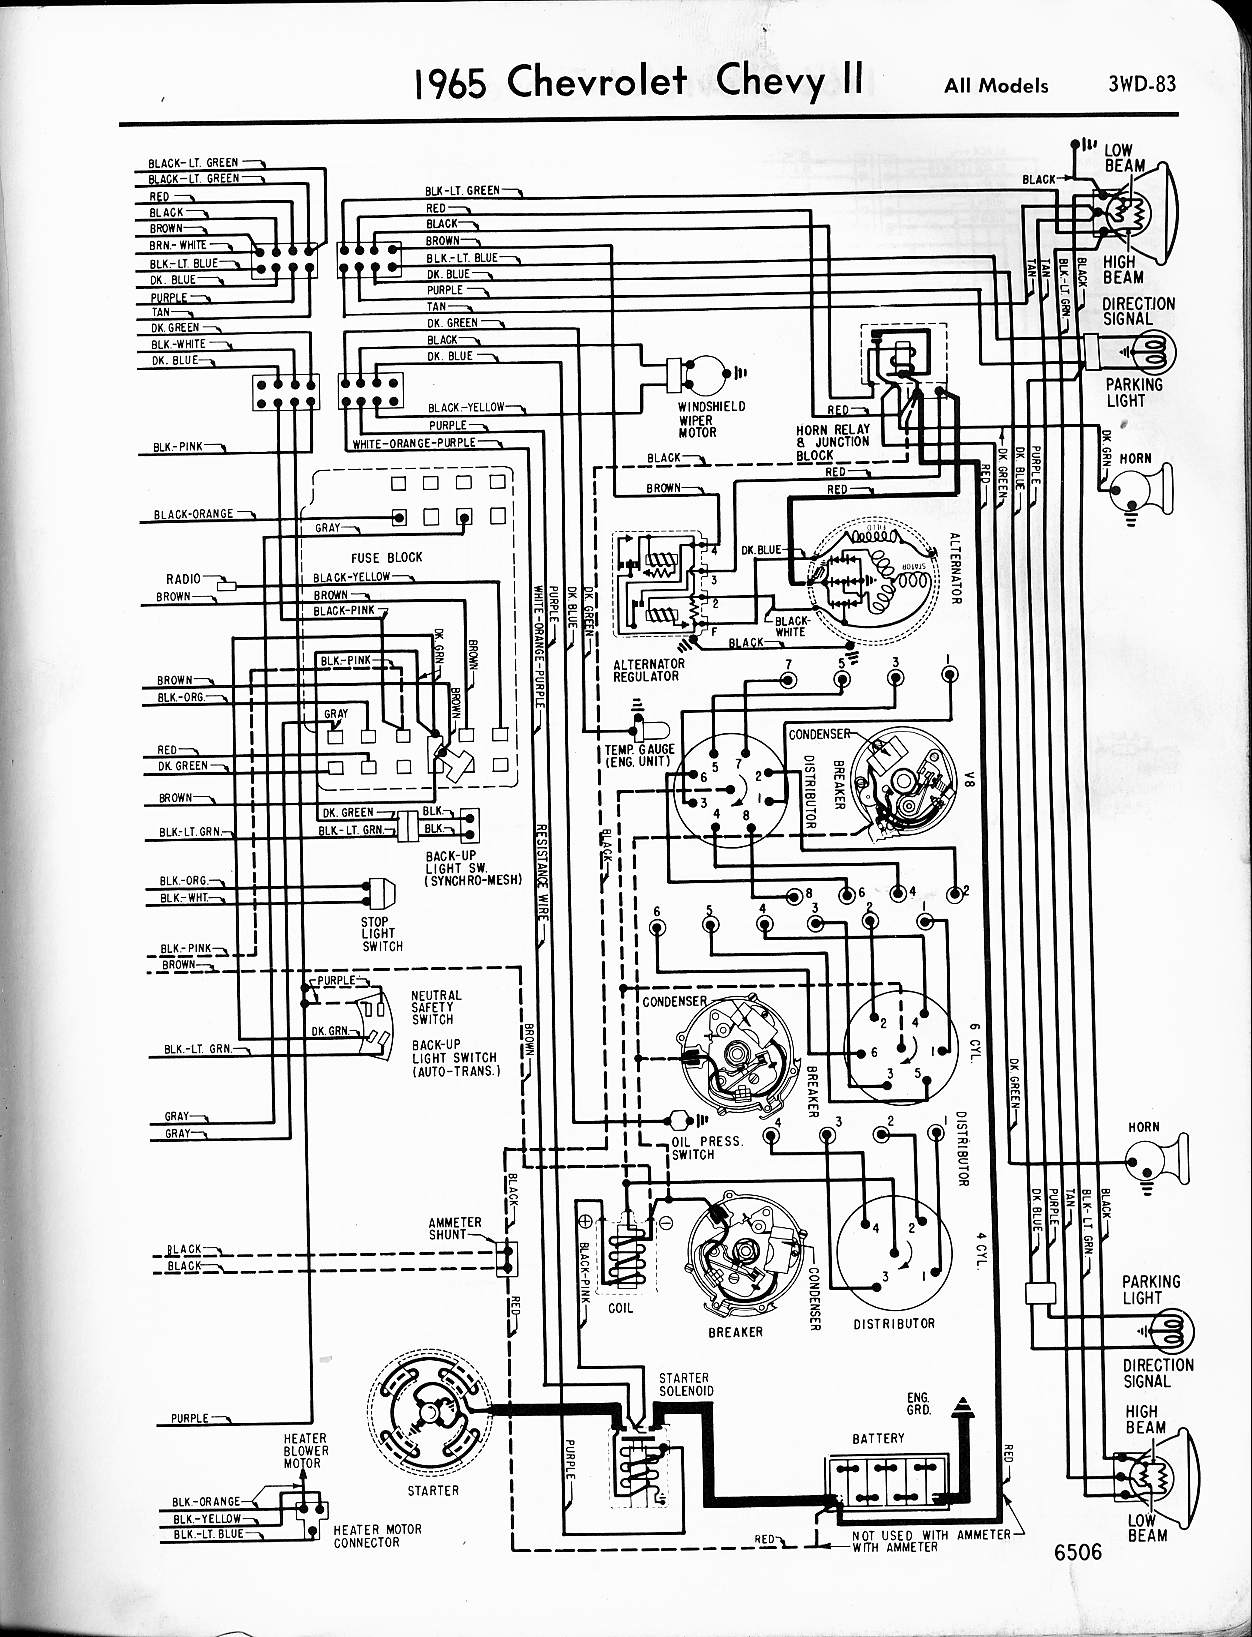 Magnificent Crazy Wiring Diagram No Messy Wiring Not Lossing Wiring Diagram Wiring Digital Resources Lavecompassionincorg